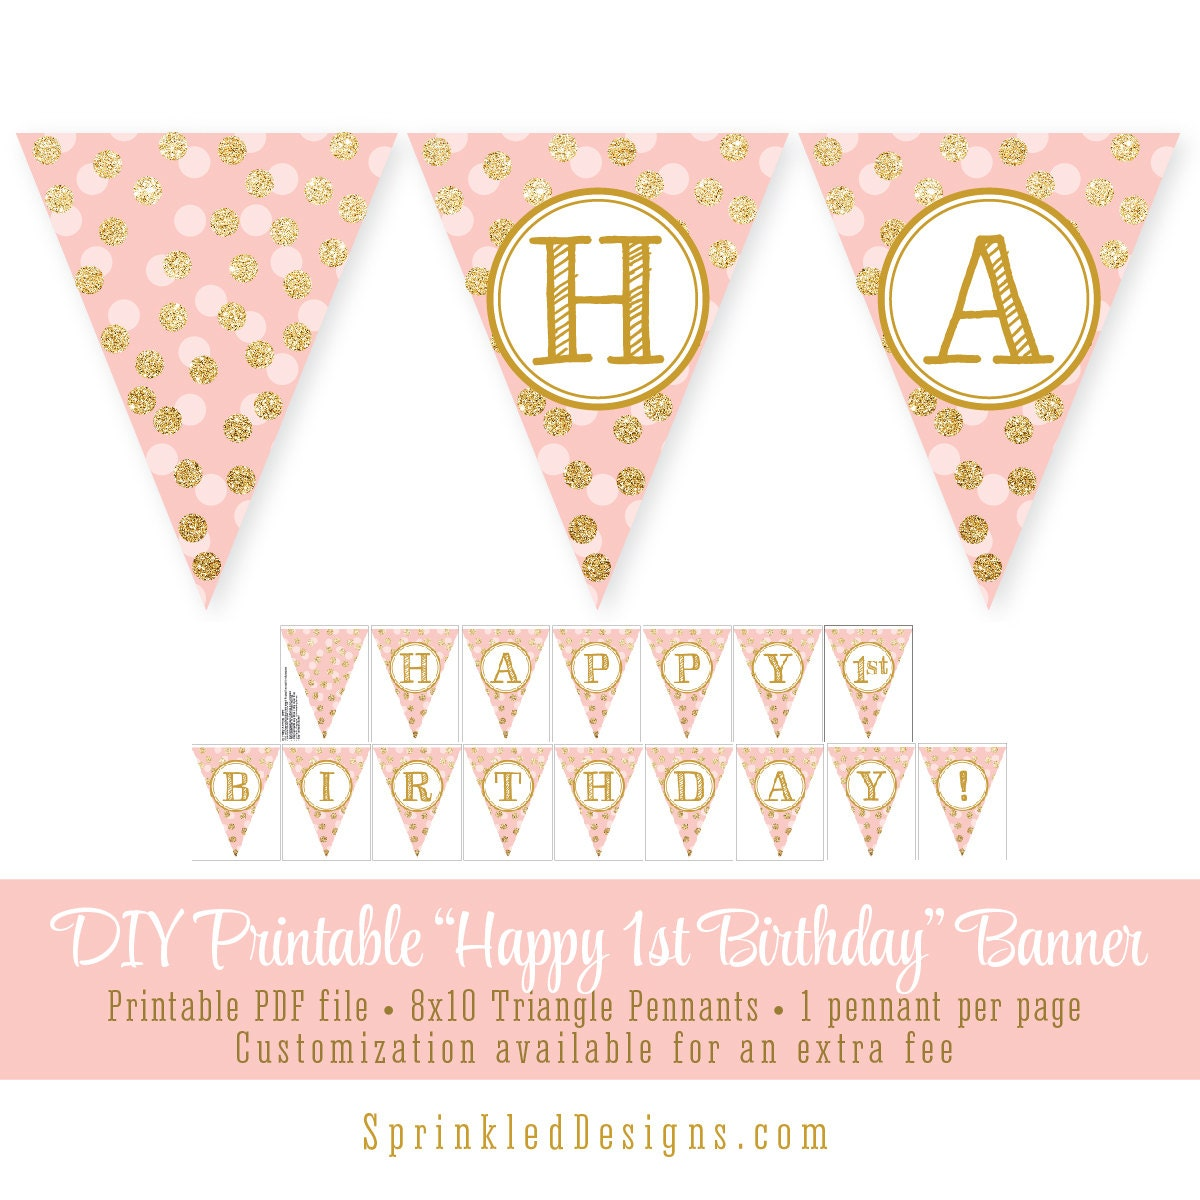 Birthday Greeting Cards Free Download Pc